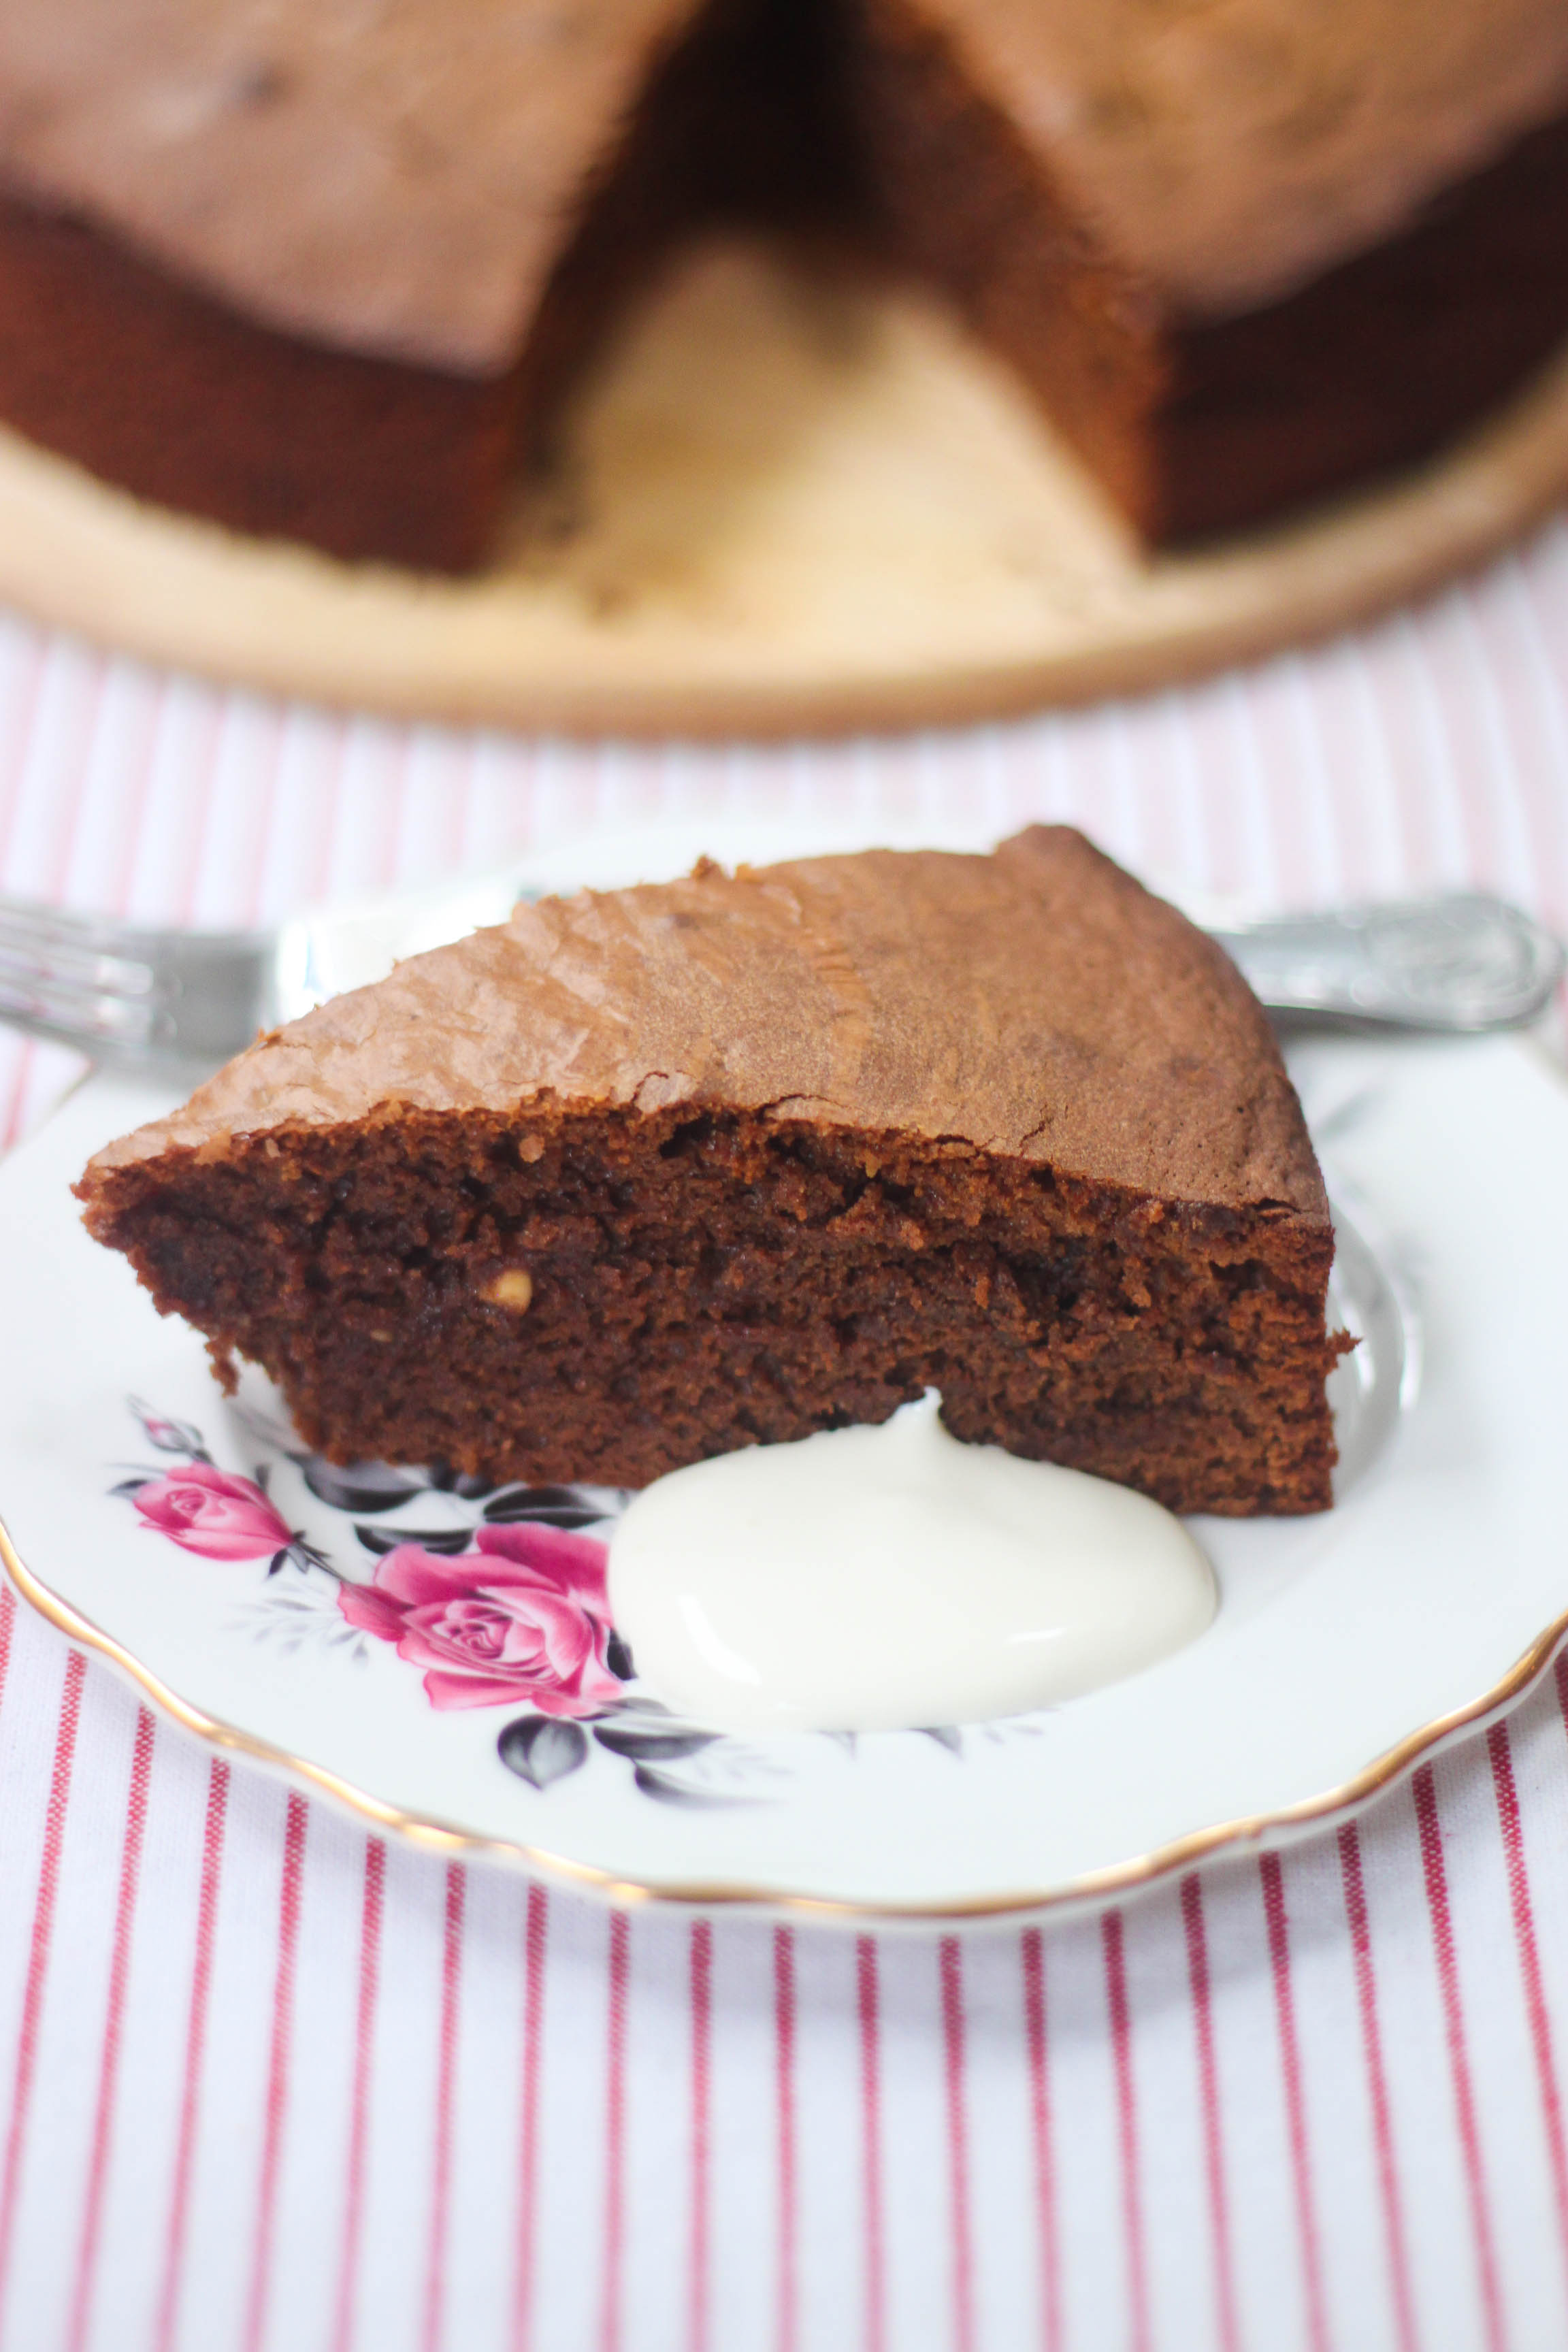 Naughty or Nice: Chocolate Peanut Butter Cake - I Can Has Cook ...